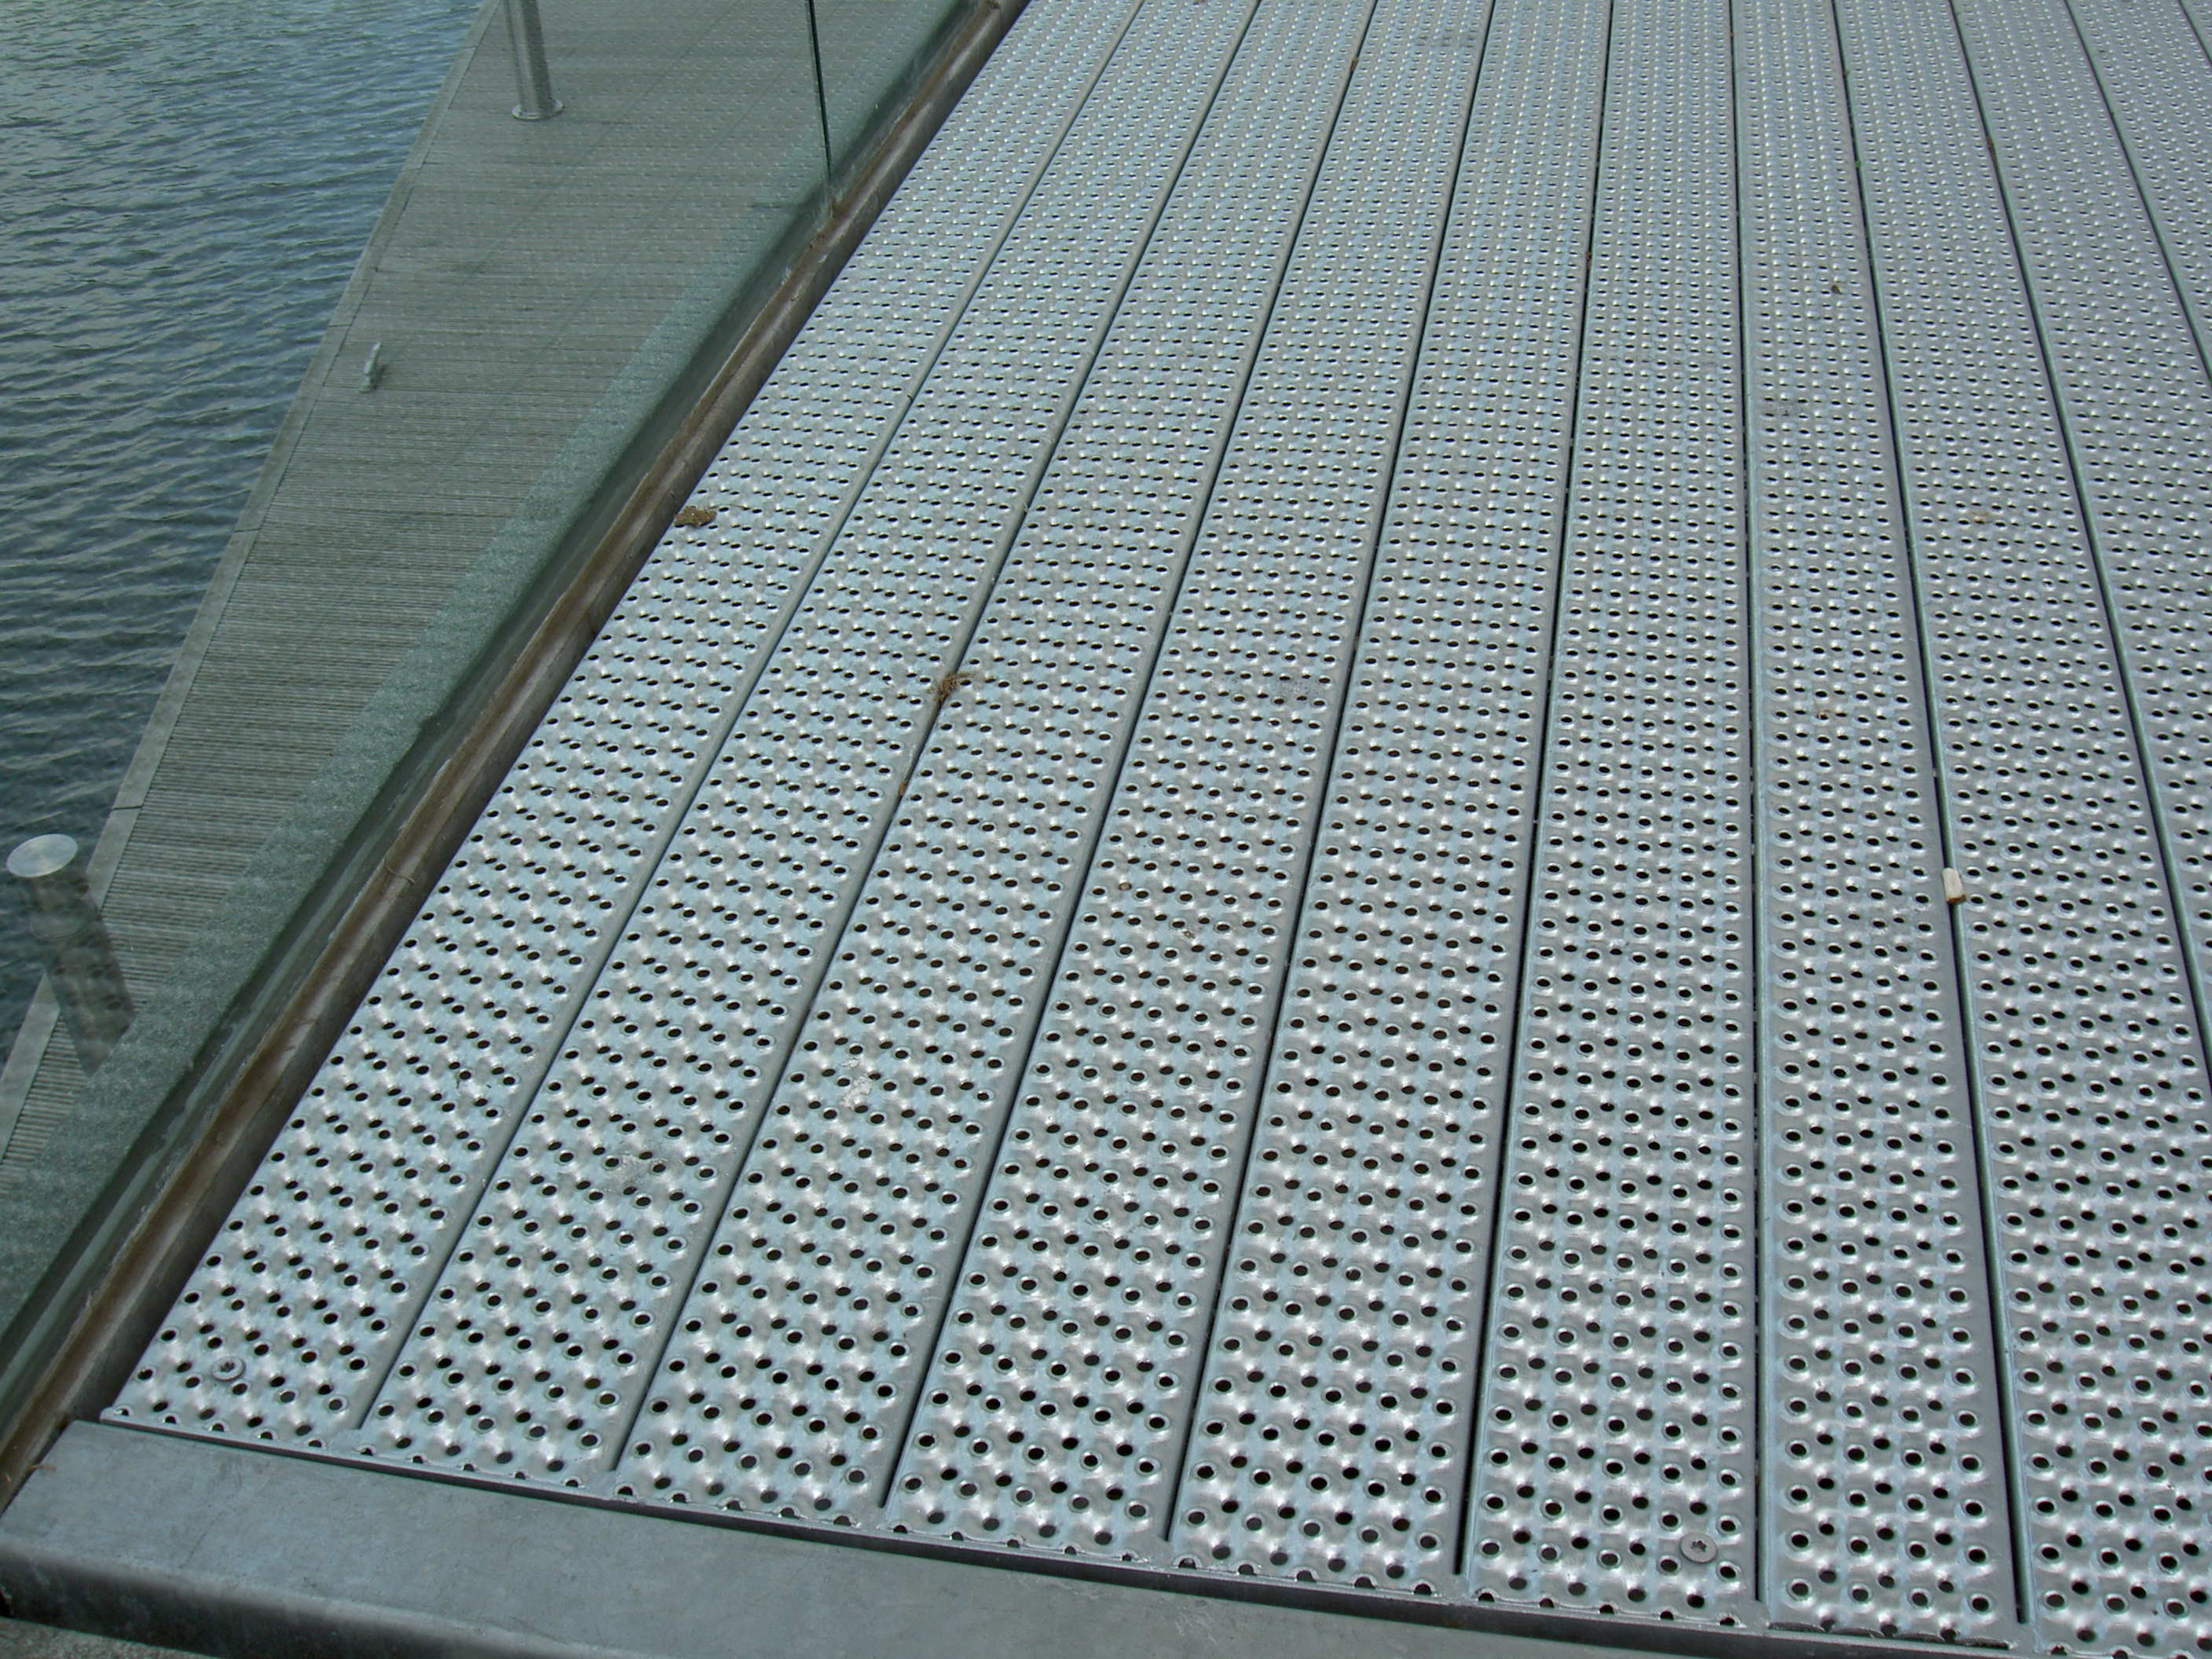 Elefant Gratings Design Of Perforated Planks